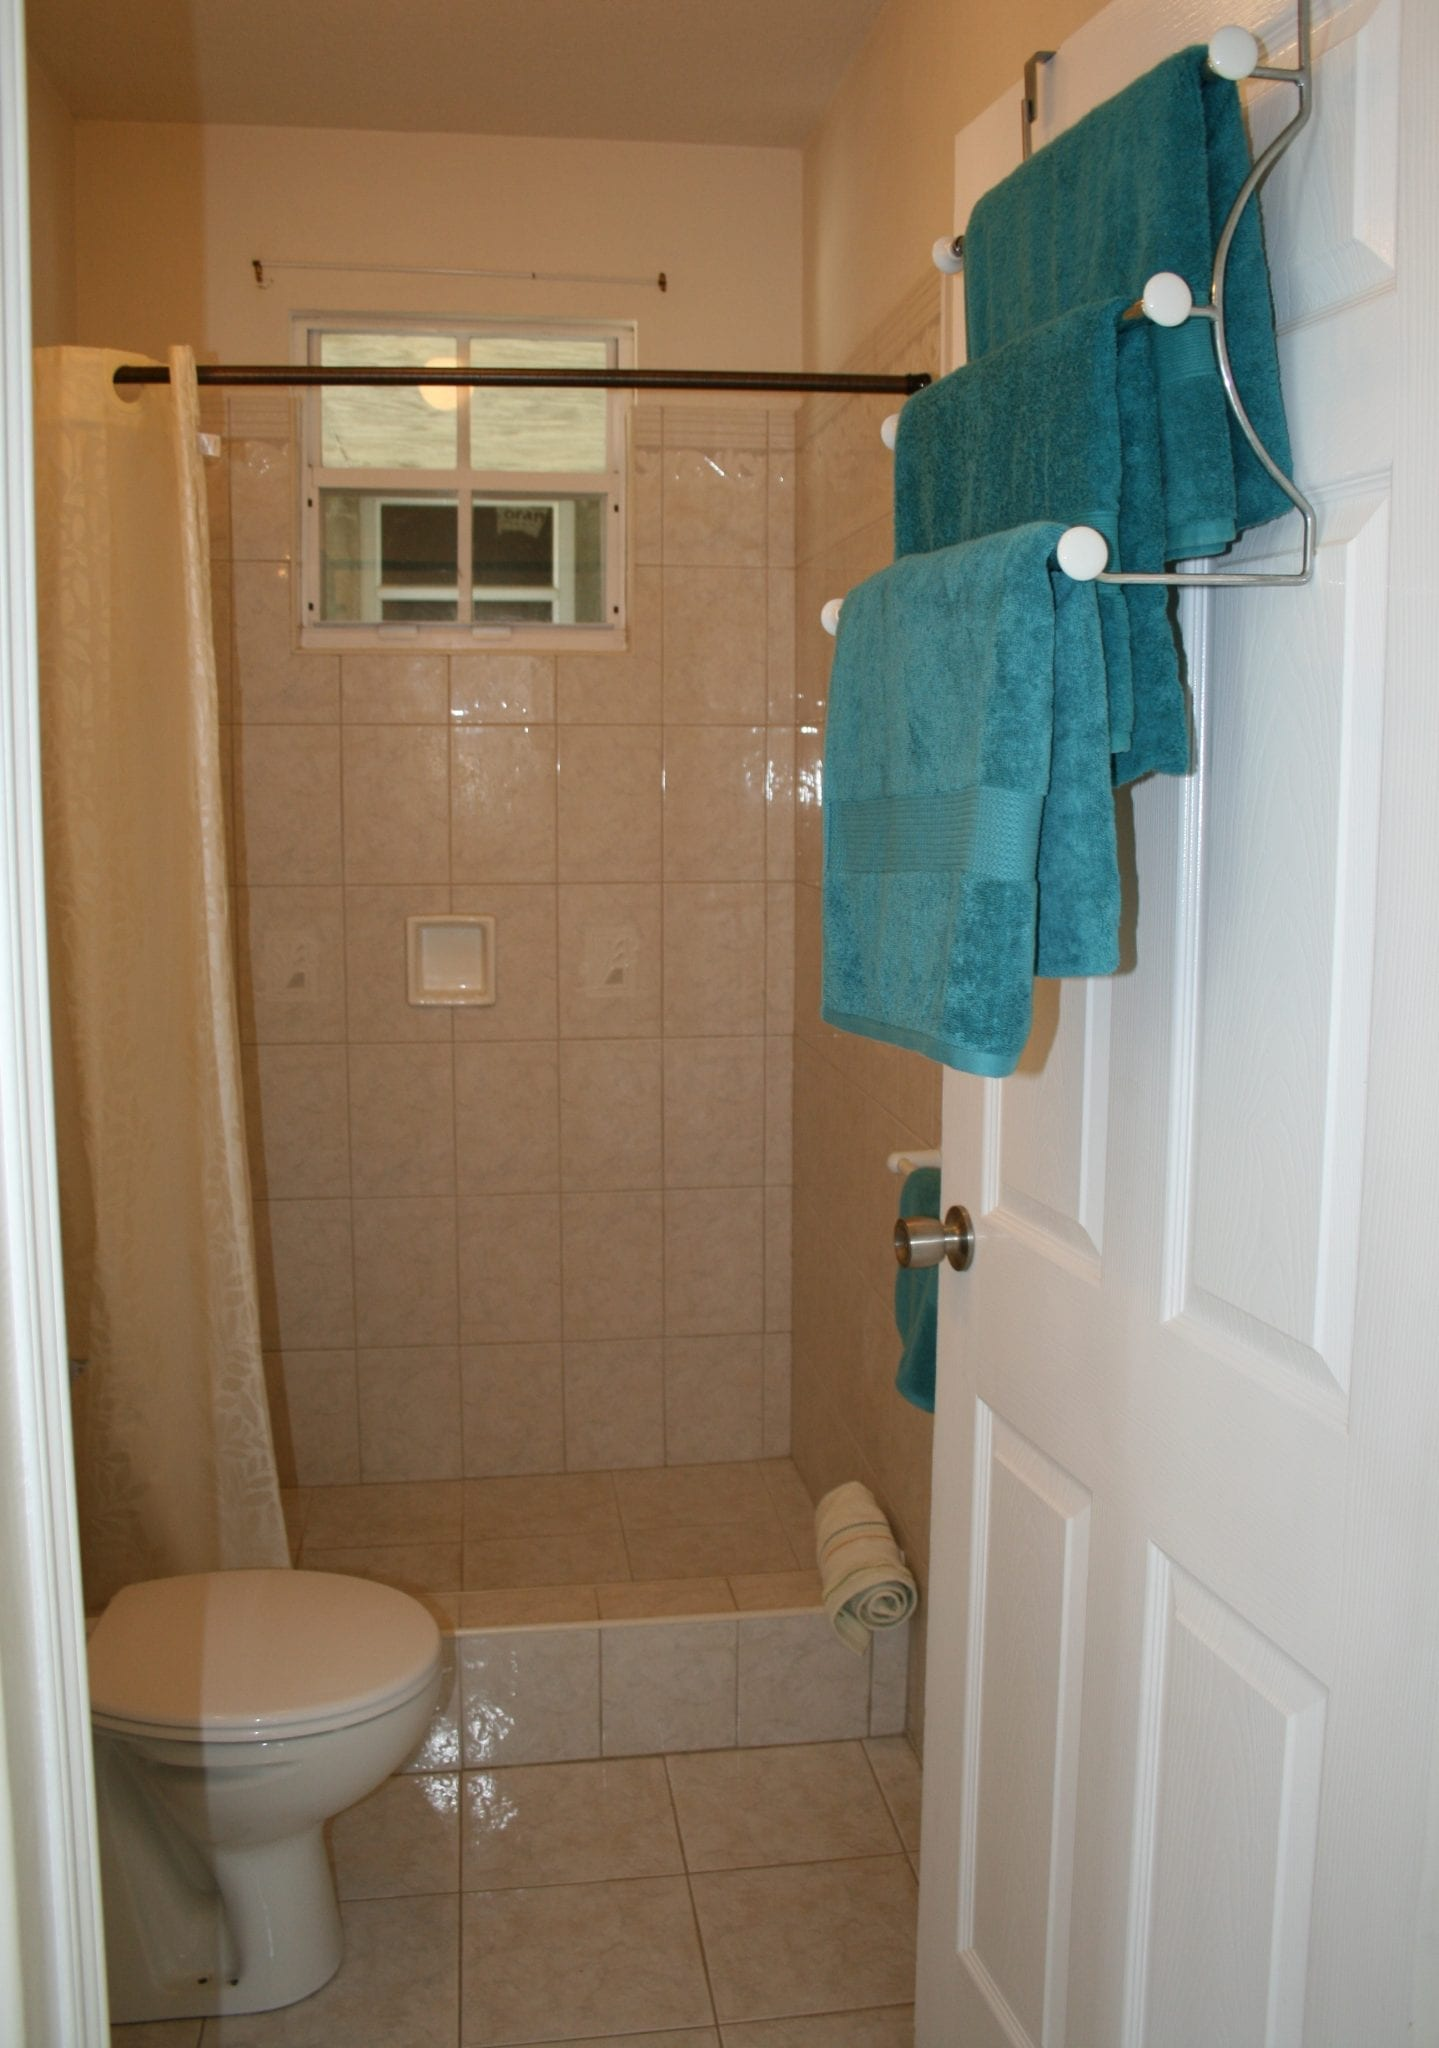 Bathroom with shower - Miri-Joy Apartments Barbados.